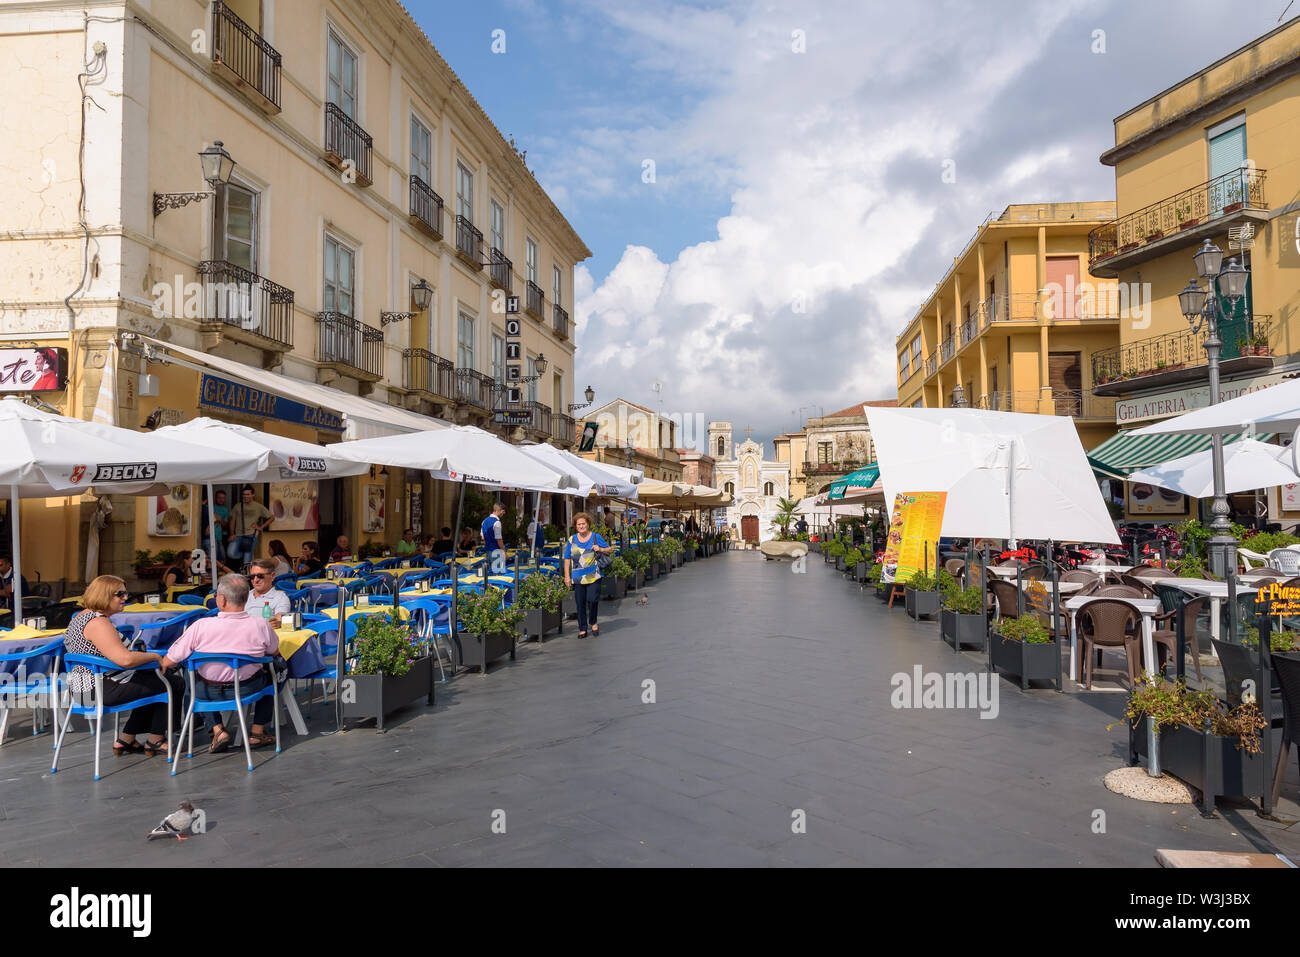 Pizzo, Calabria, Italy - September 10, 2016: Tourists visit restaurants in a picturesque town center of Pizzo in southern Italy Stock Photo